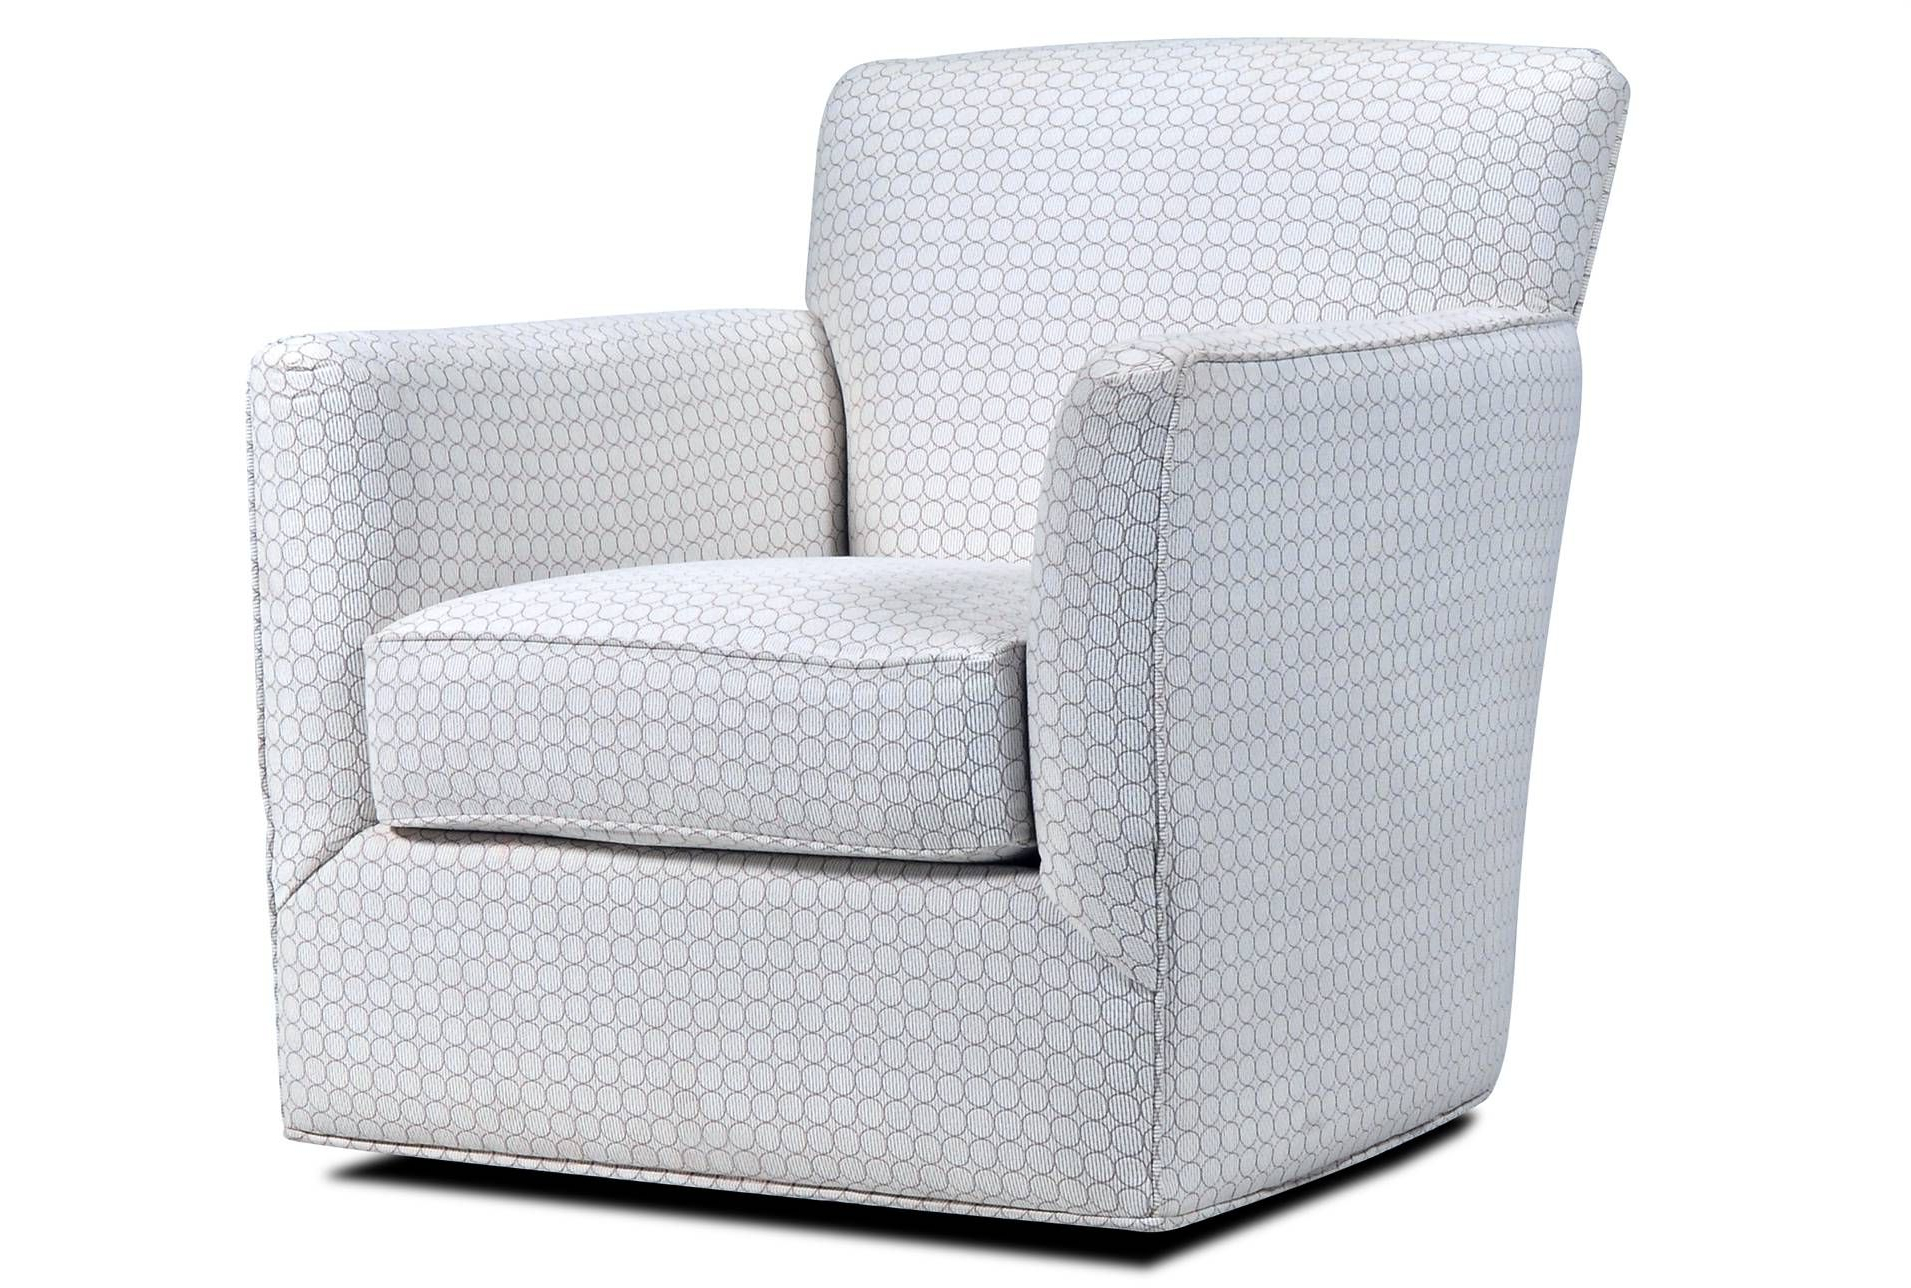 Swivel Chair With Regard To Circuit Swivel Accent Chairs (View 5 of 20)